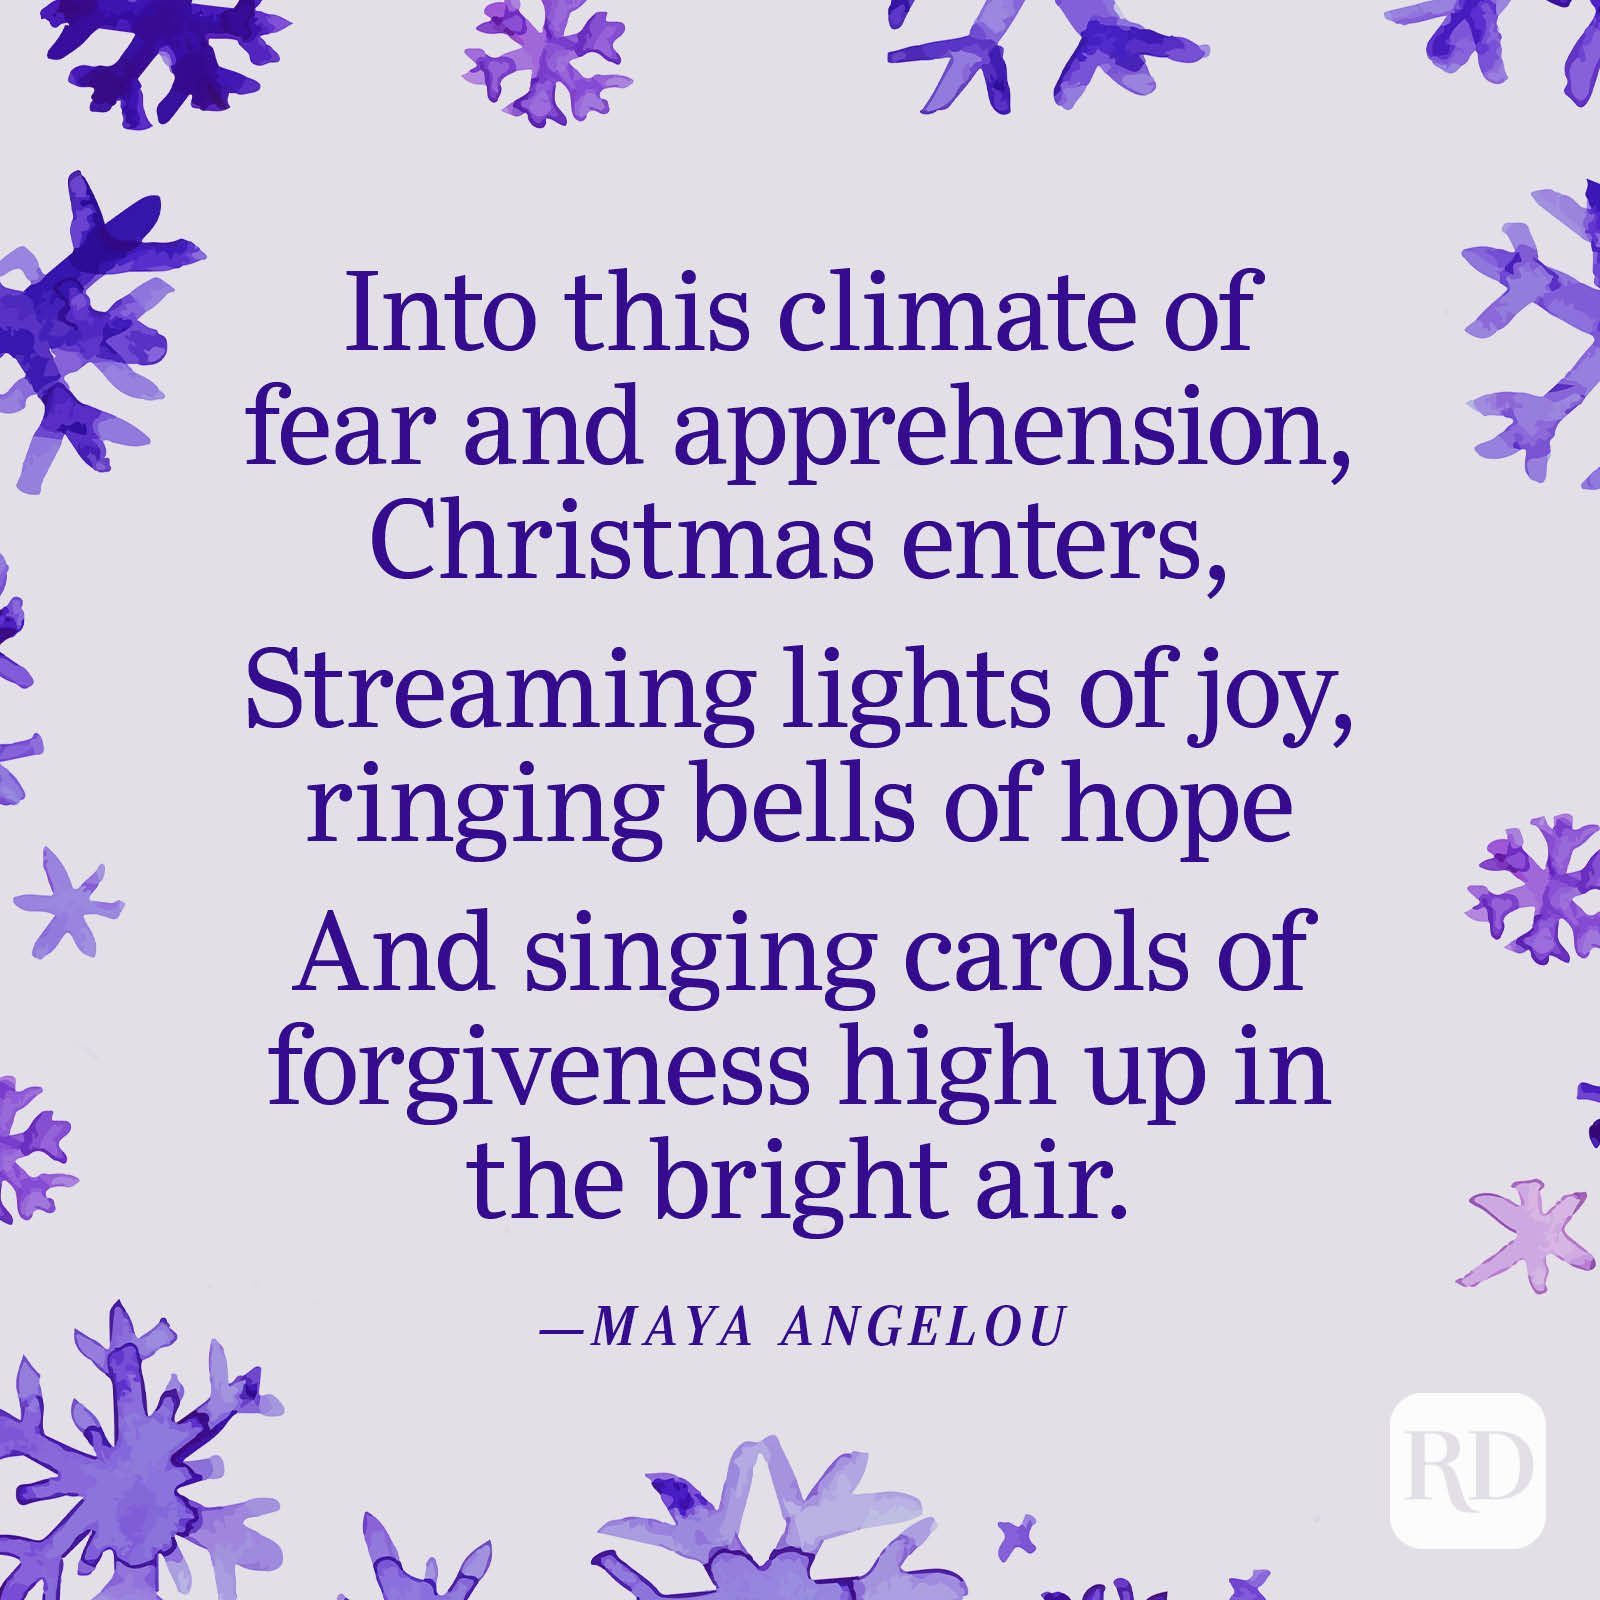 """""""Into this climate of fear and apprehension, Christmas enters, Streaming lights of joy, ringing bells of hope And singing carols of forgiveness high up in the bright air."""" —Maya Angelou"""